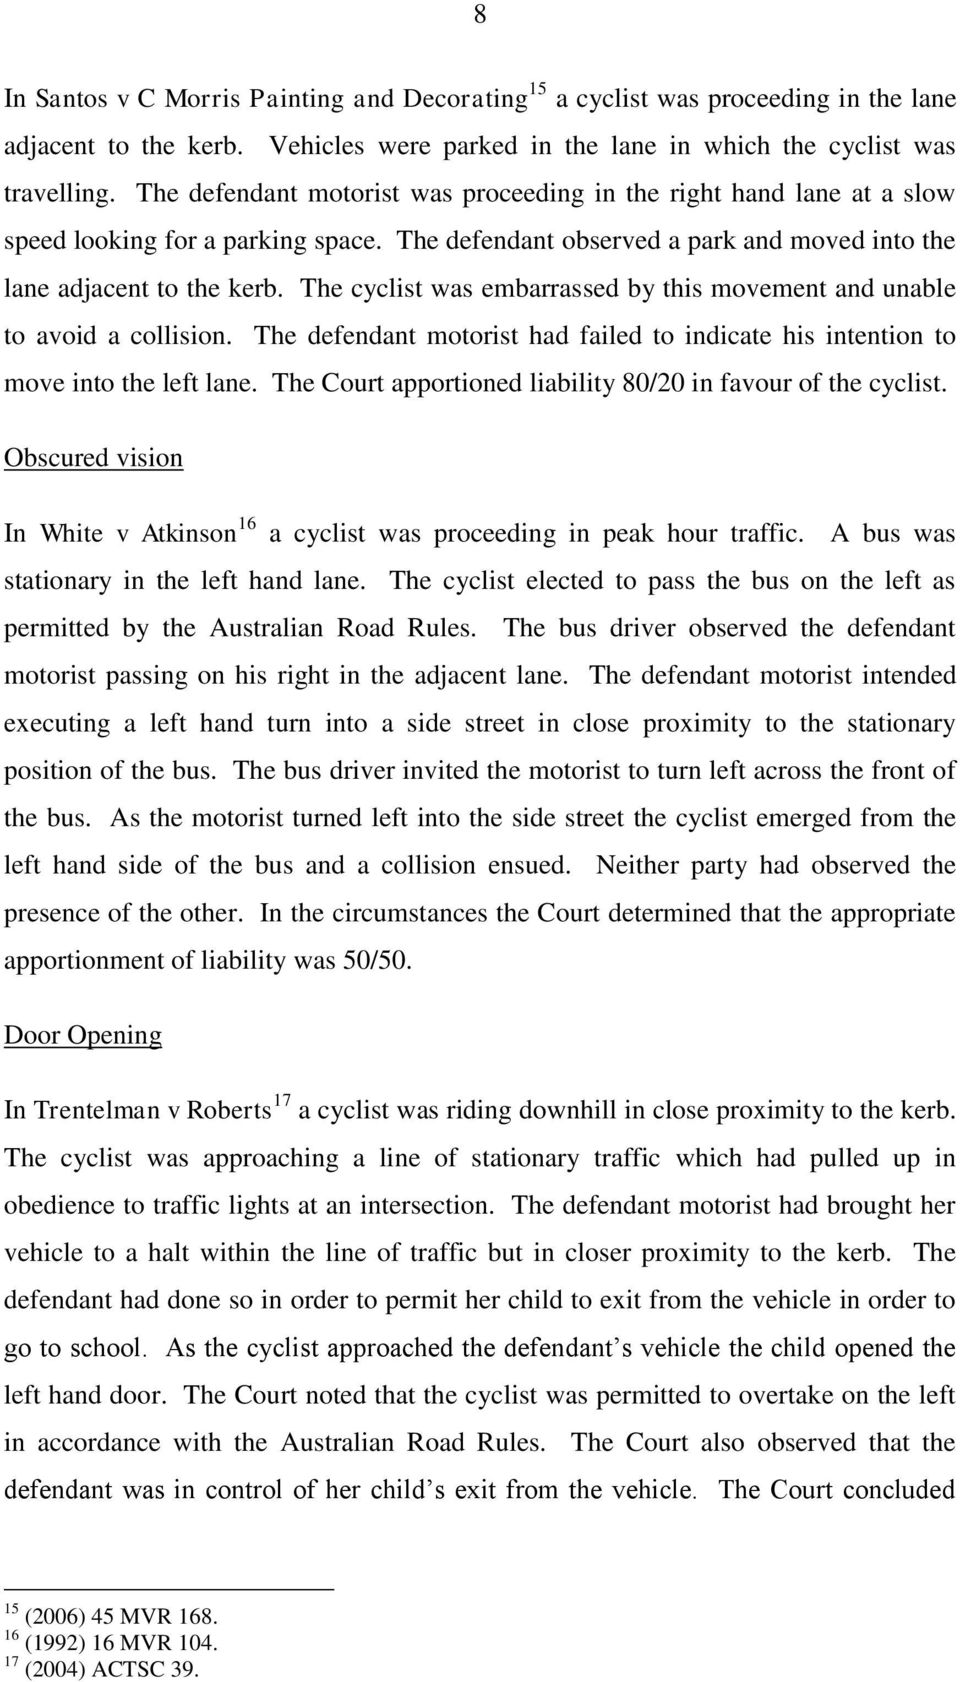 The cyclist was embarrassed by this movement and unable to avoid a collision. The defendant motorist had failed to indicate his intention to move into the left lane.